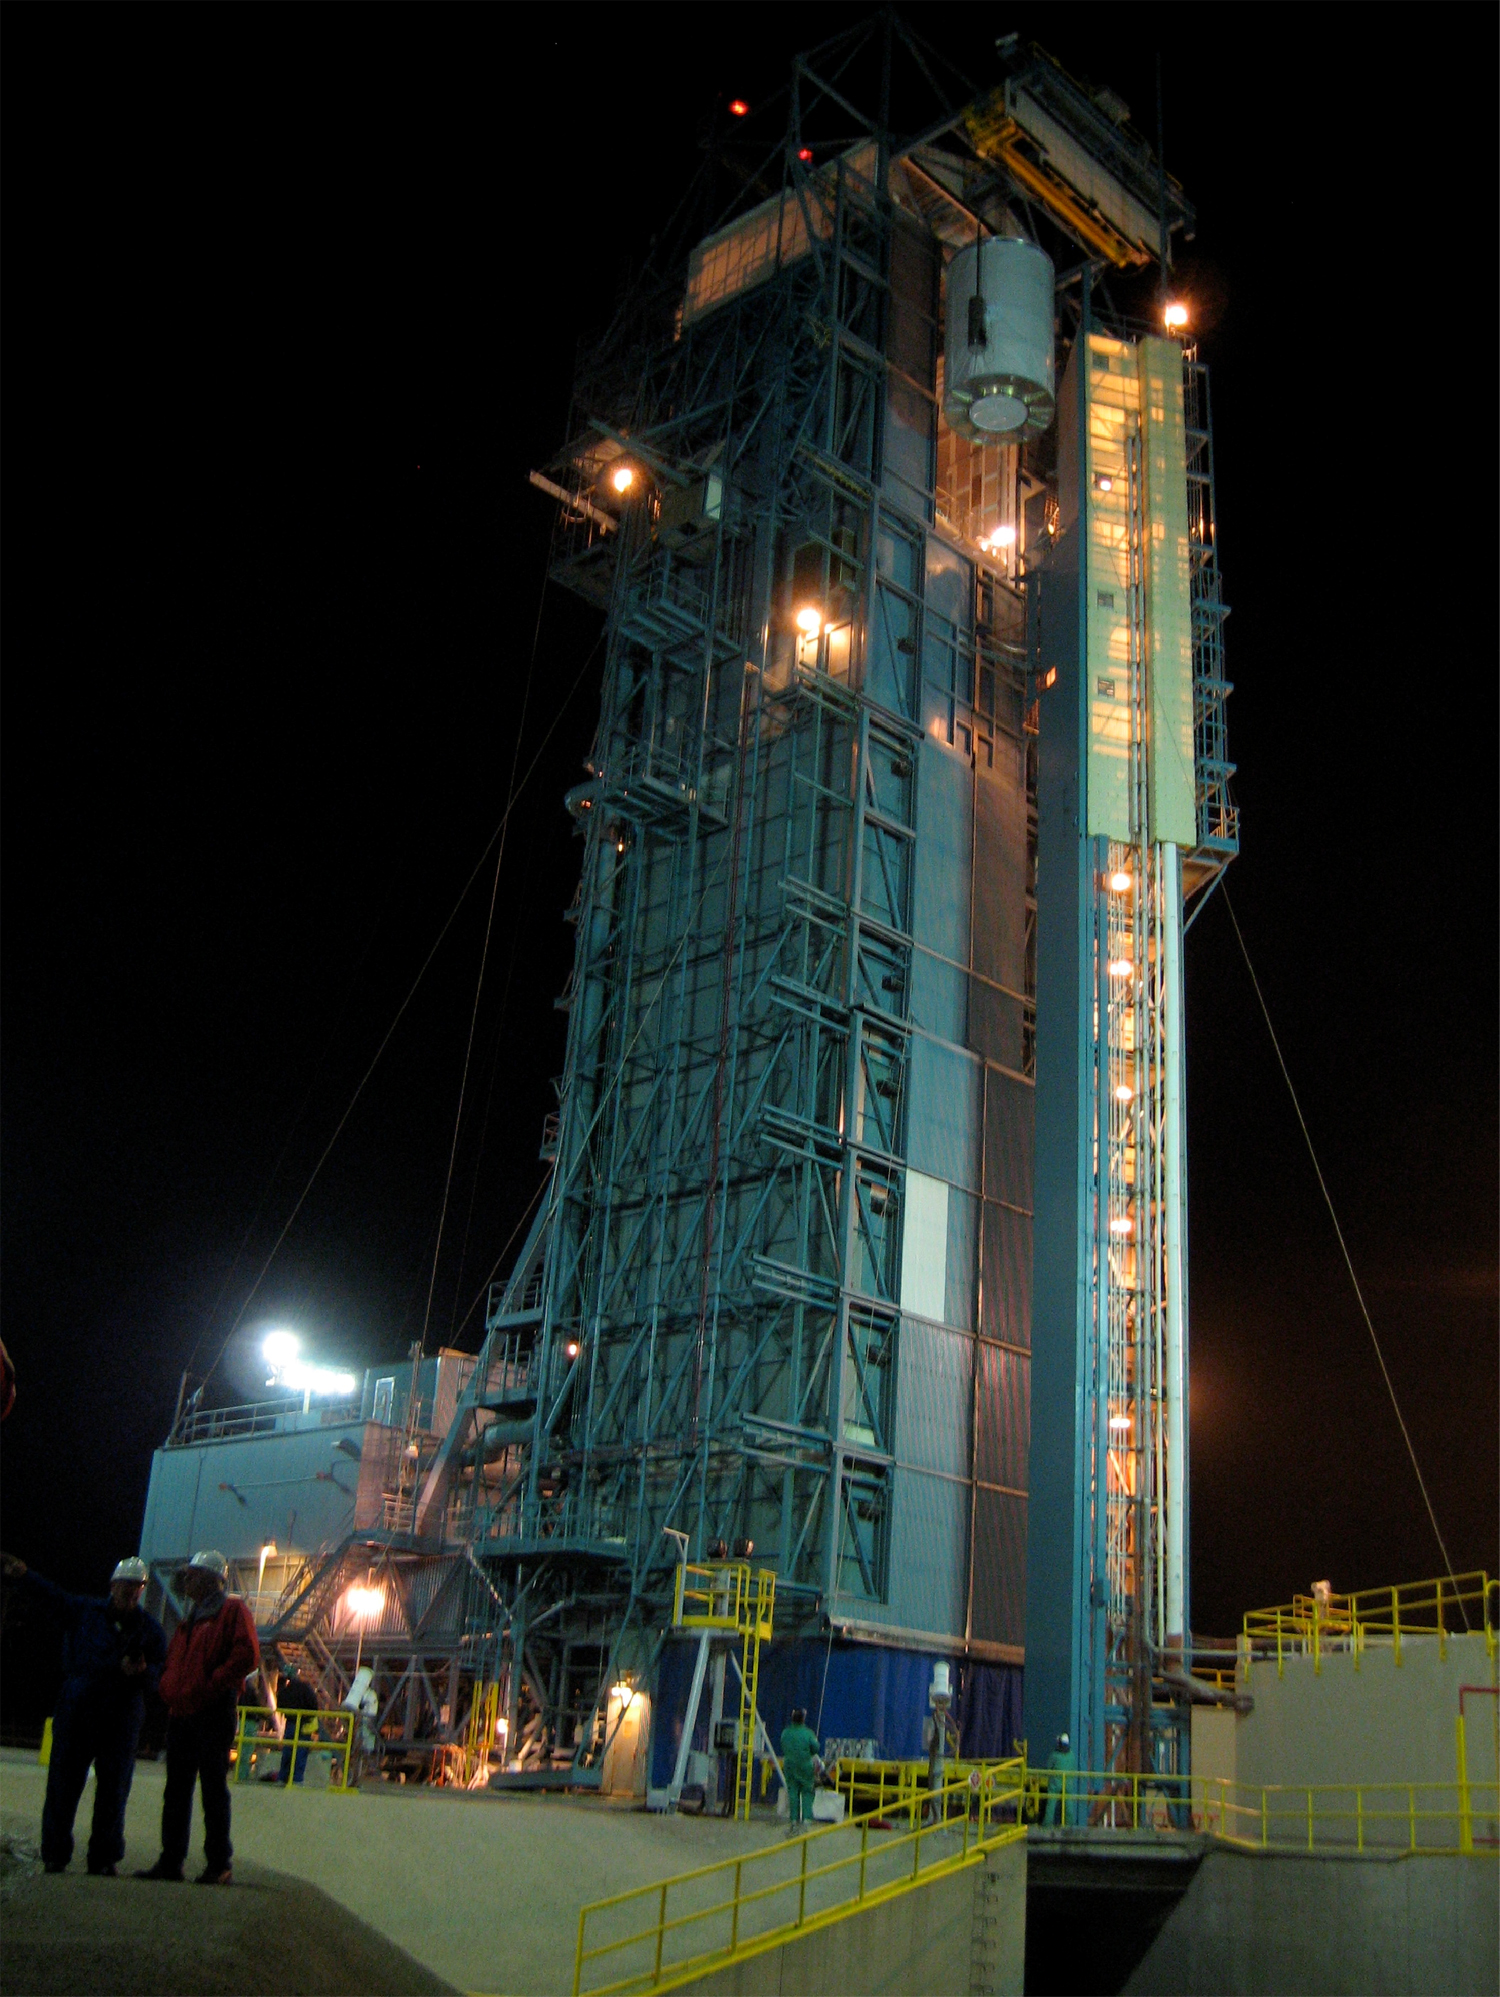 NASA's Wide-field Infrared Survey Explorer, or Wise, is seen here being hoisted to the top of its United Launch Alliance Detla II rocket at Vandenberg Air Force Base